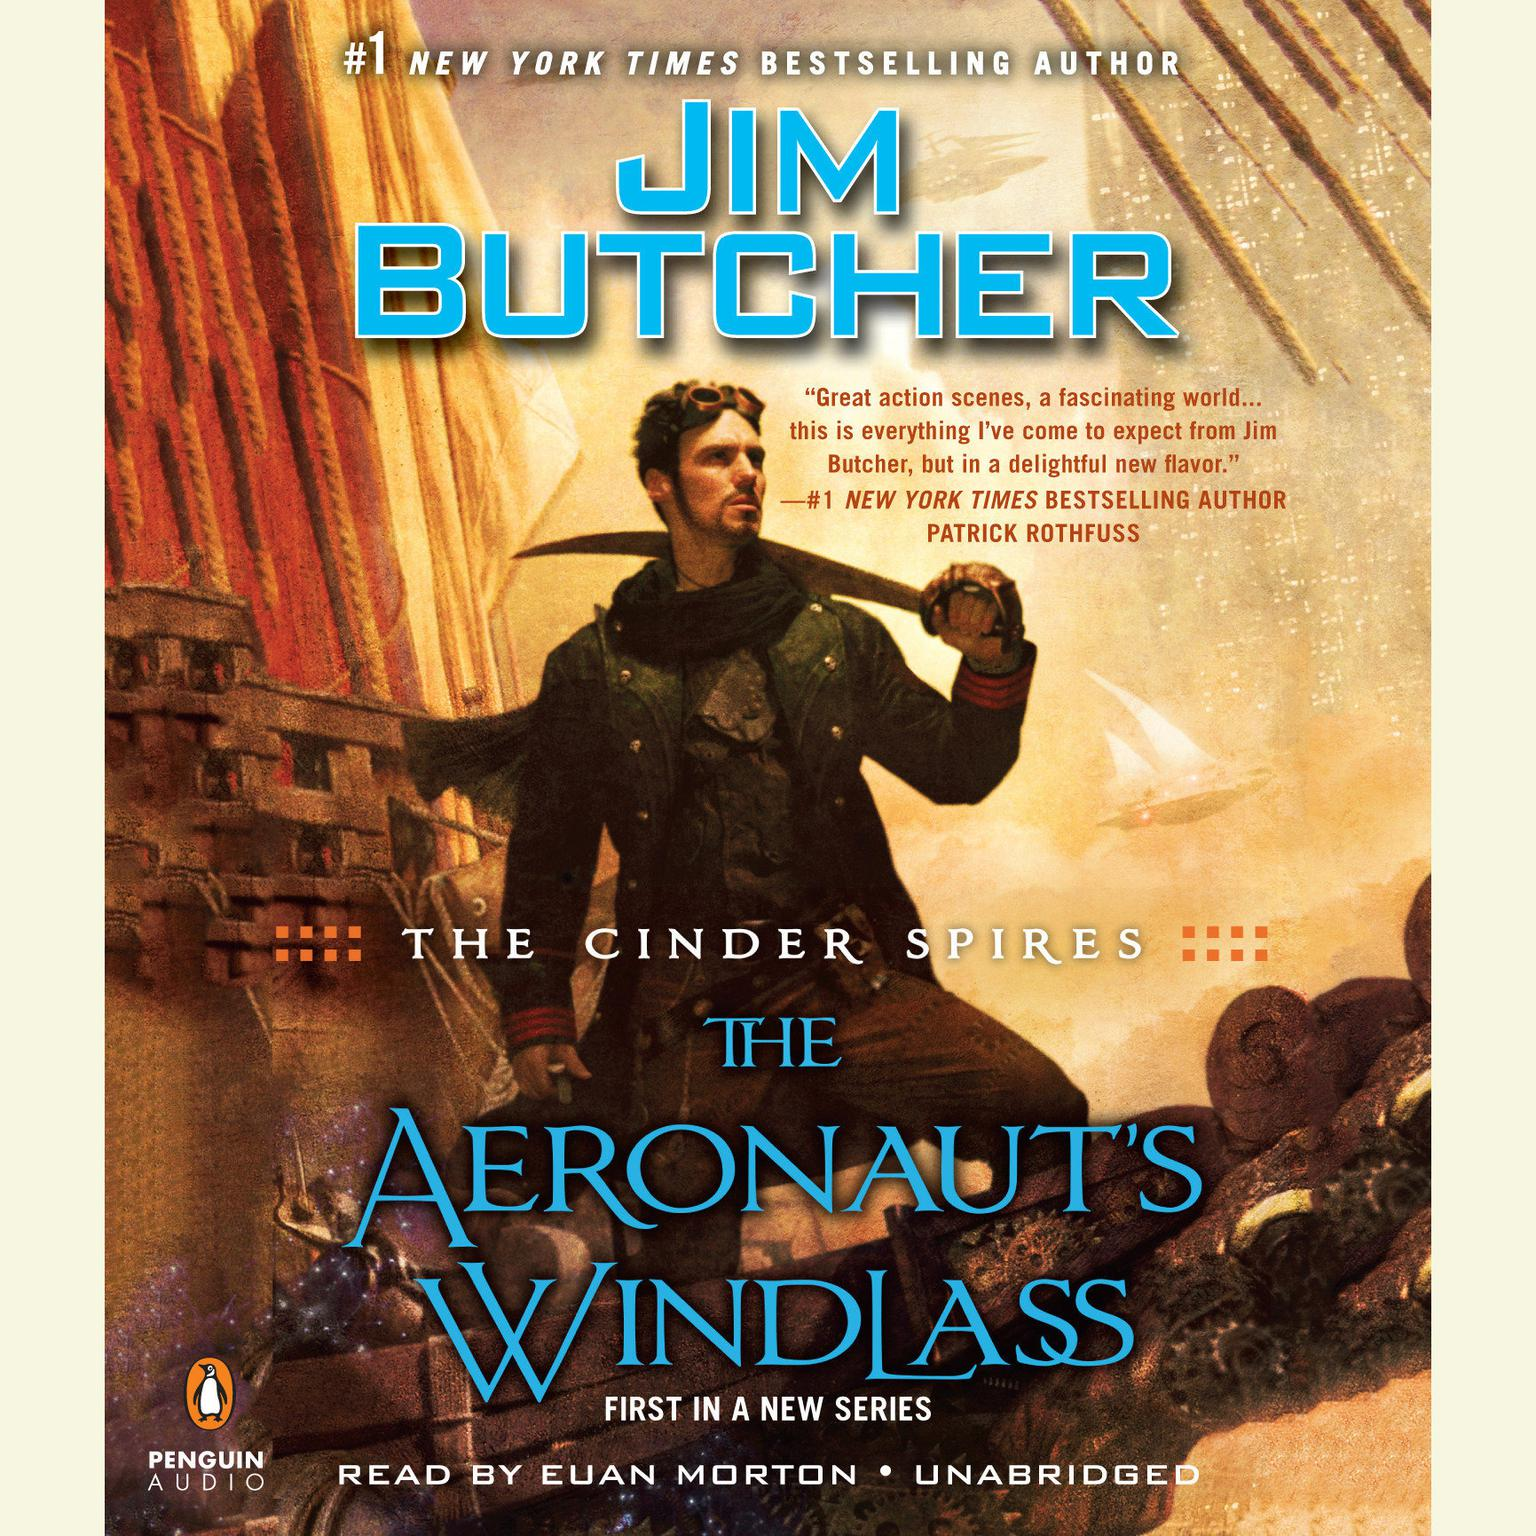 Printable The Cinder Spires: The Aeronaut's Windlass Audiobook Cover Art